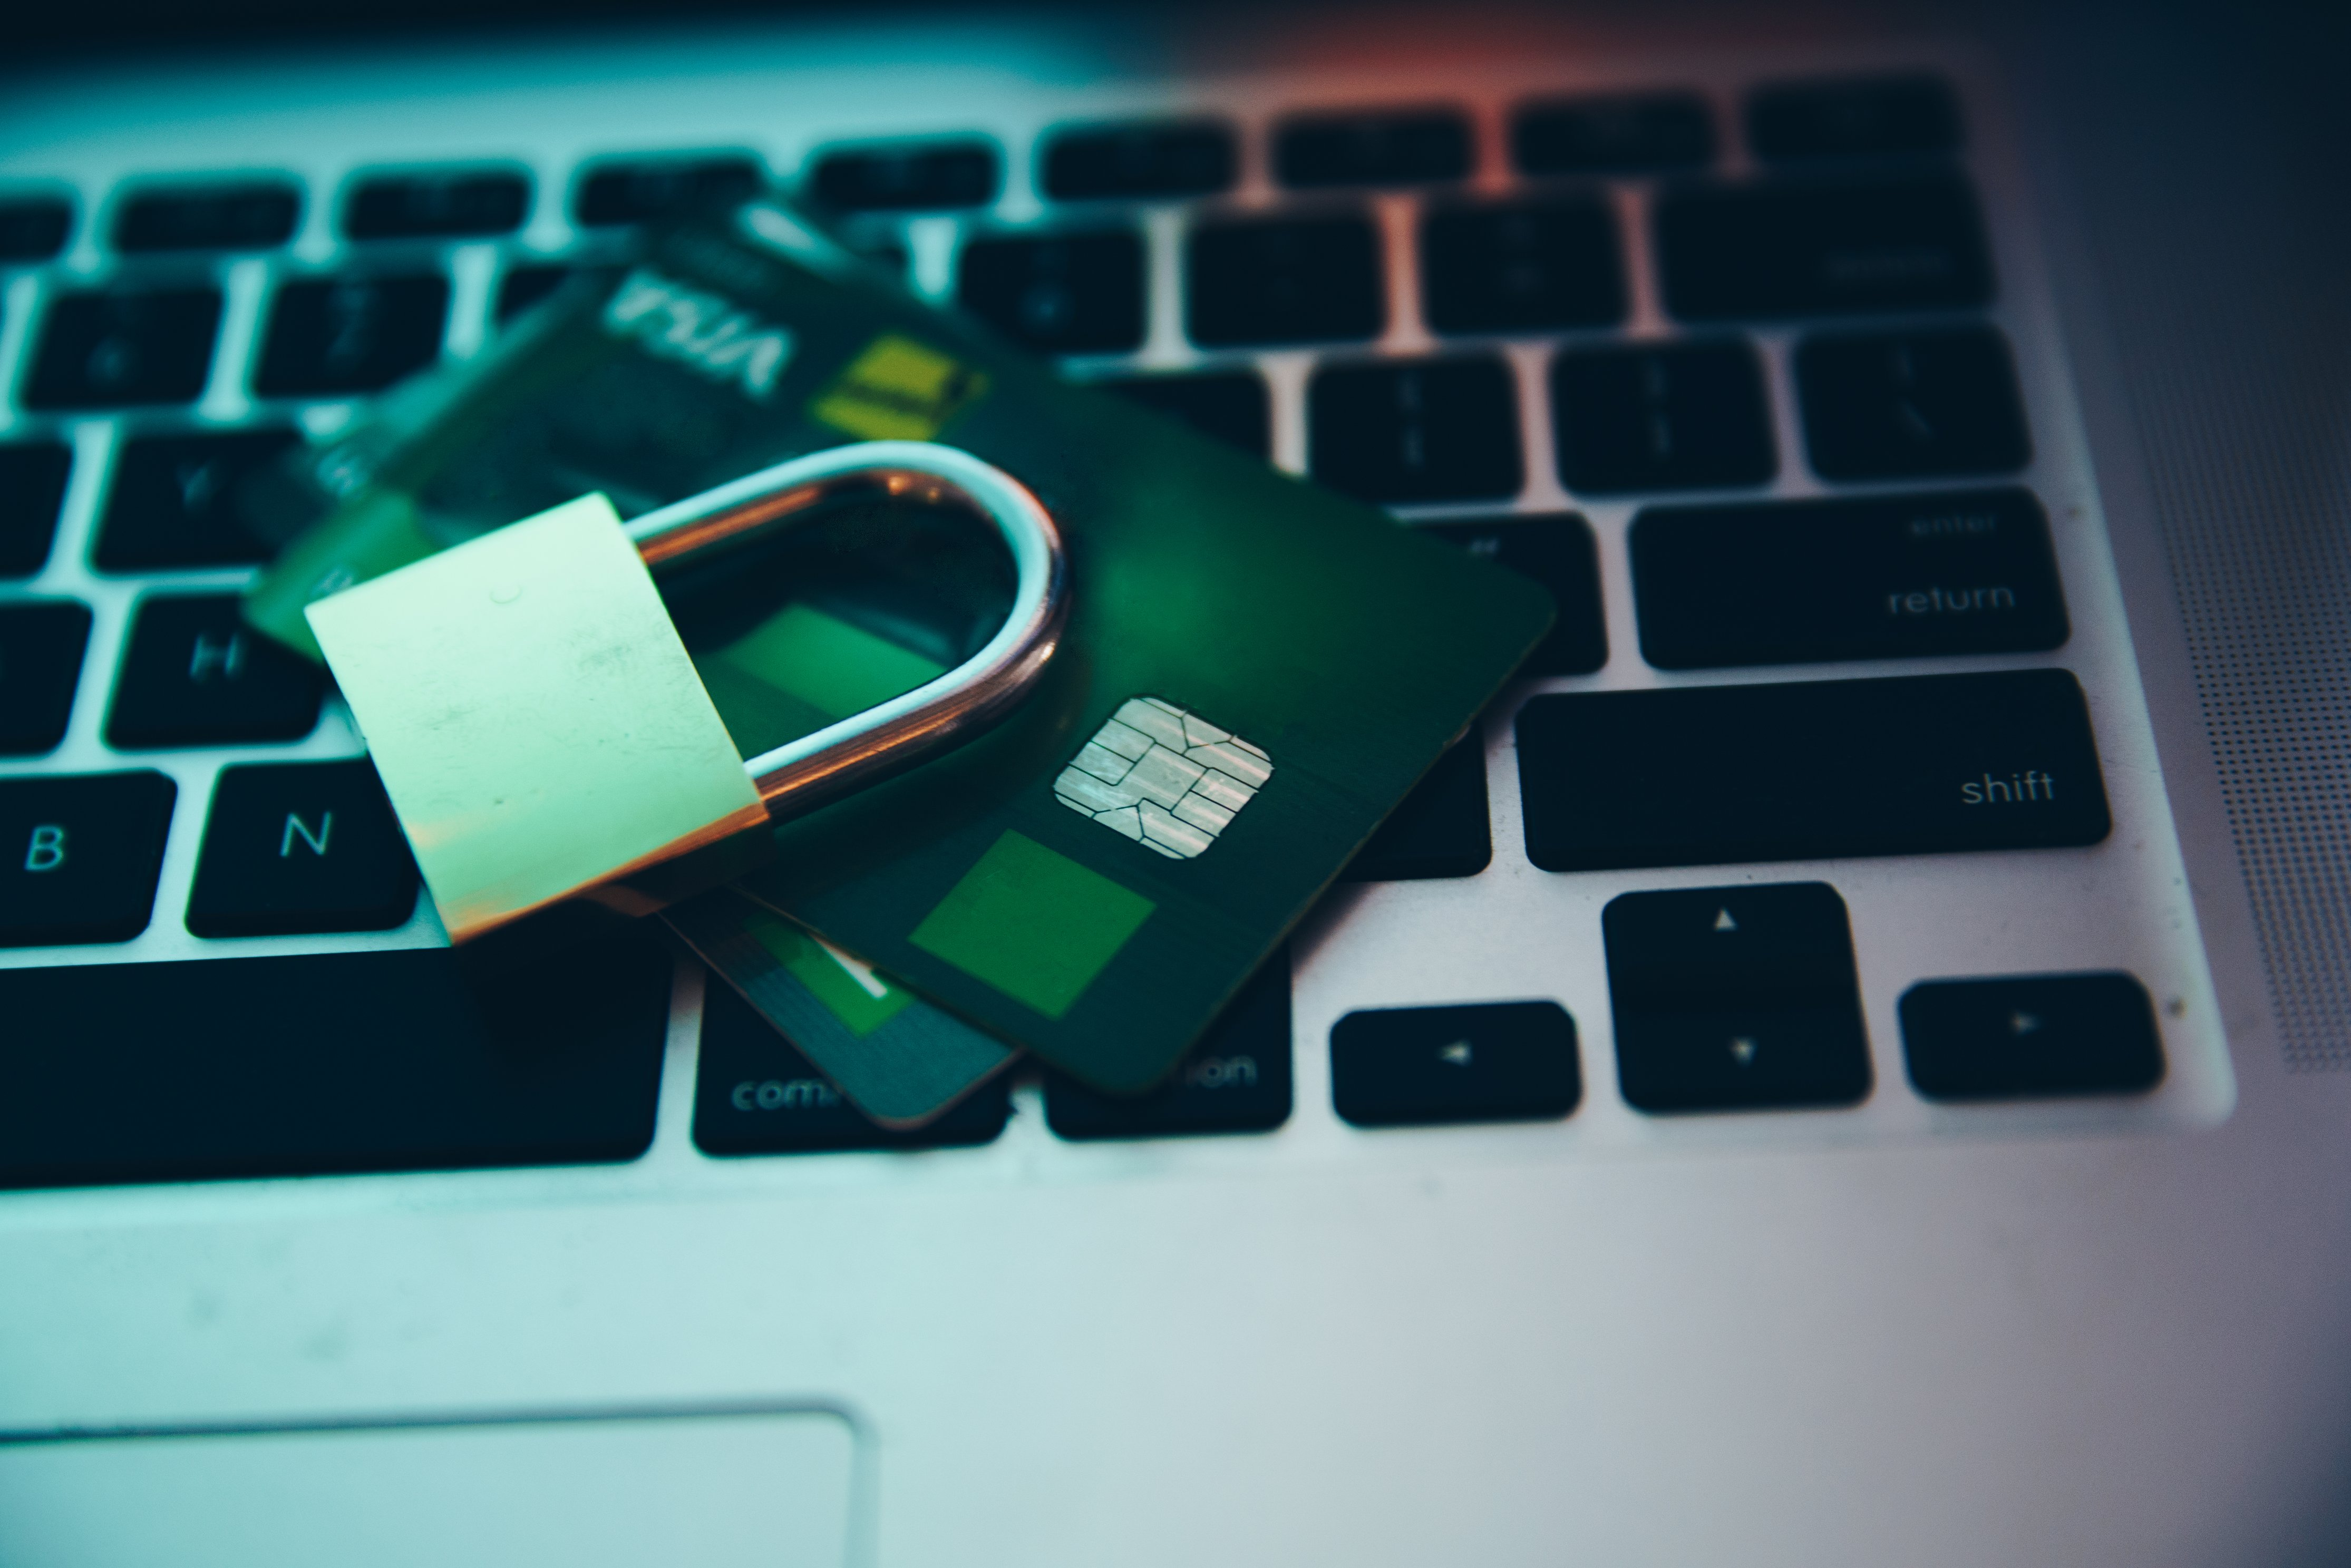 computer-security-lock-and-payment_4460x4460.jpg (4460×2975)